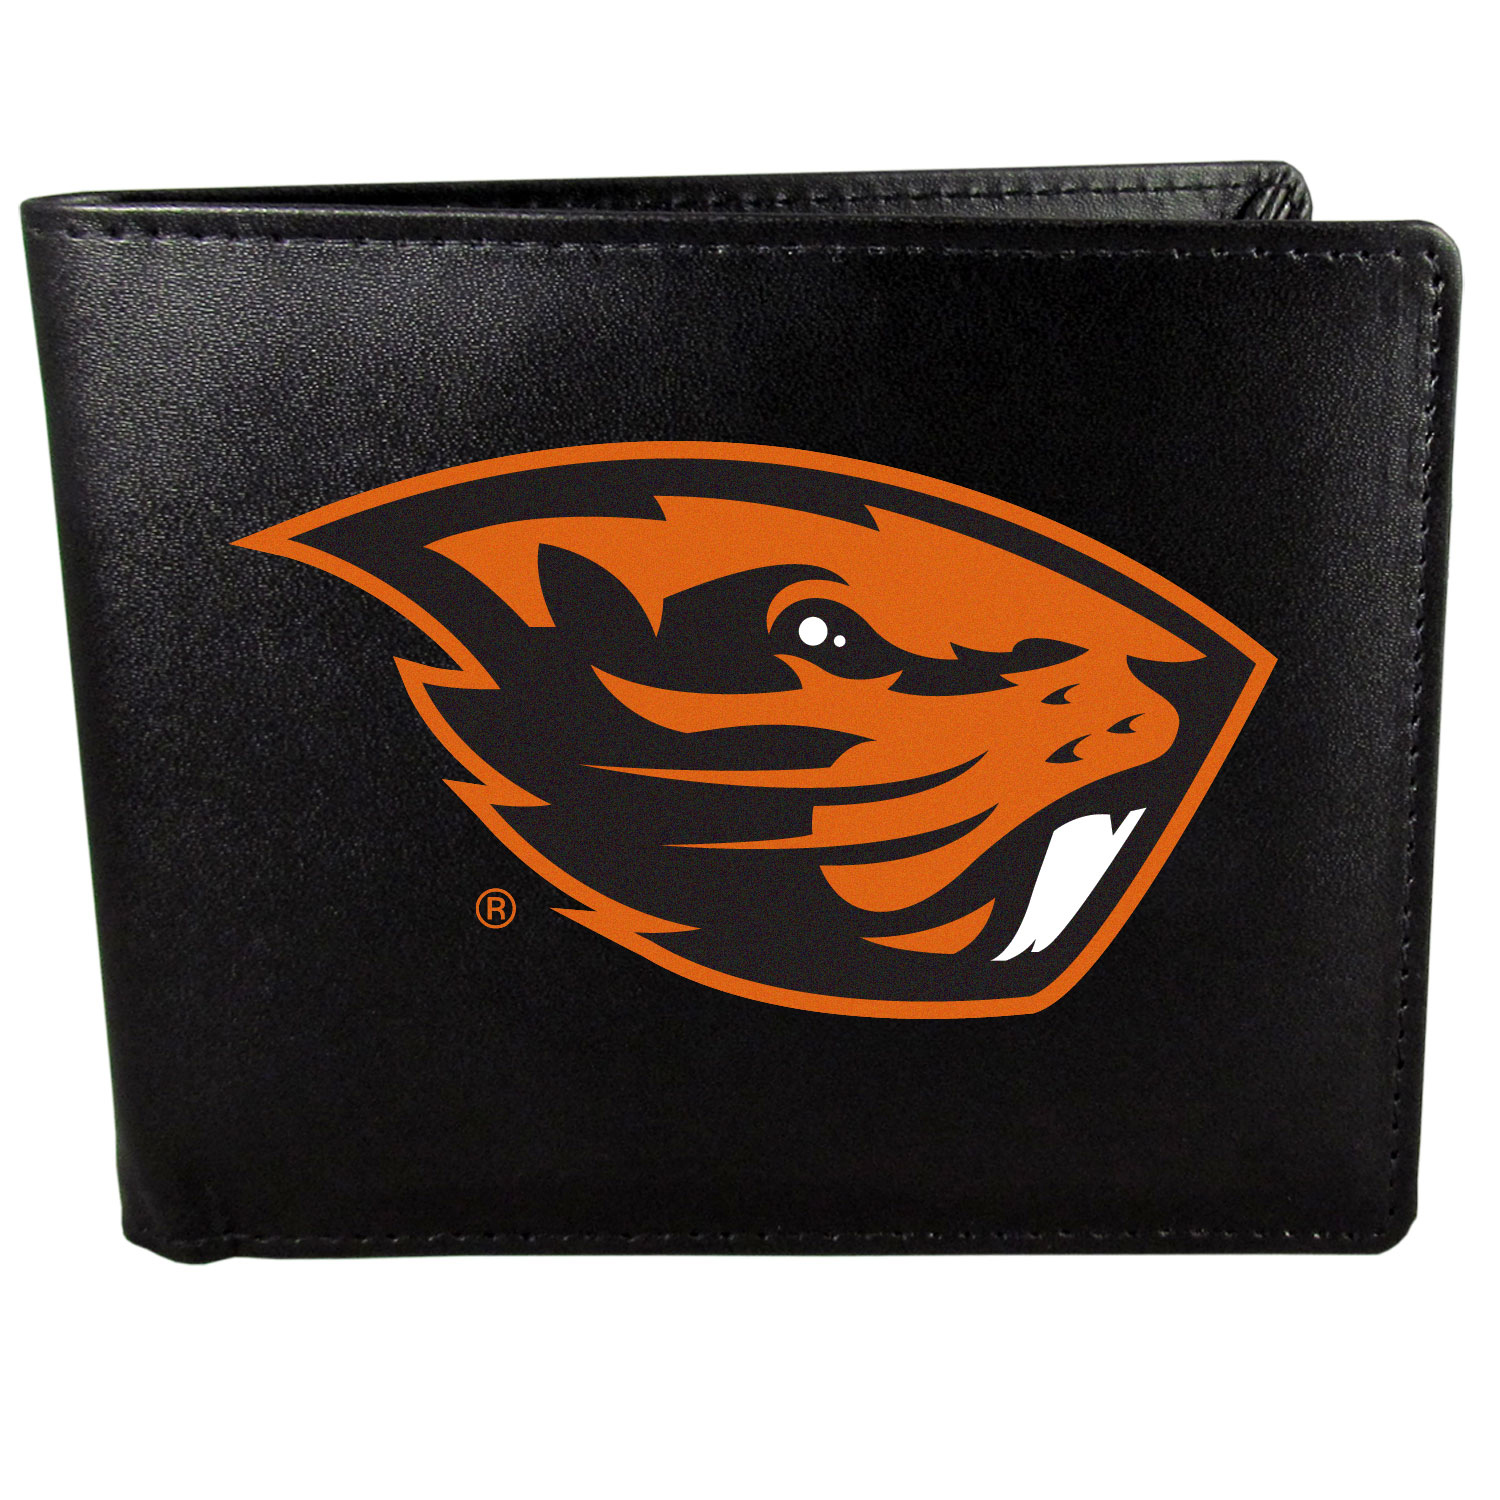 Oregon St. Beavers Leather Bi-fold Wallet, Large Logo - Our classic fine leather bi-fold wallet is meticulously crafted with genuine leather that will age beautifully so you will have a quality wallet for years to come. The wallet opens to a large, billfold pocket and numerous credit card slots and has a convenient windowed ID slot. The front of the wallet features an extra large Oregon St. Beavers printed logo.